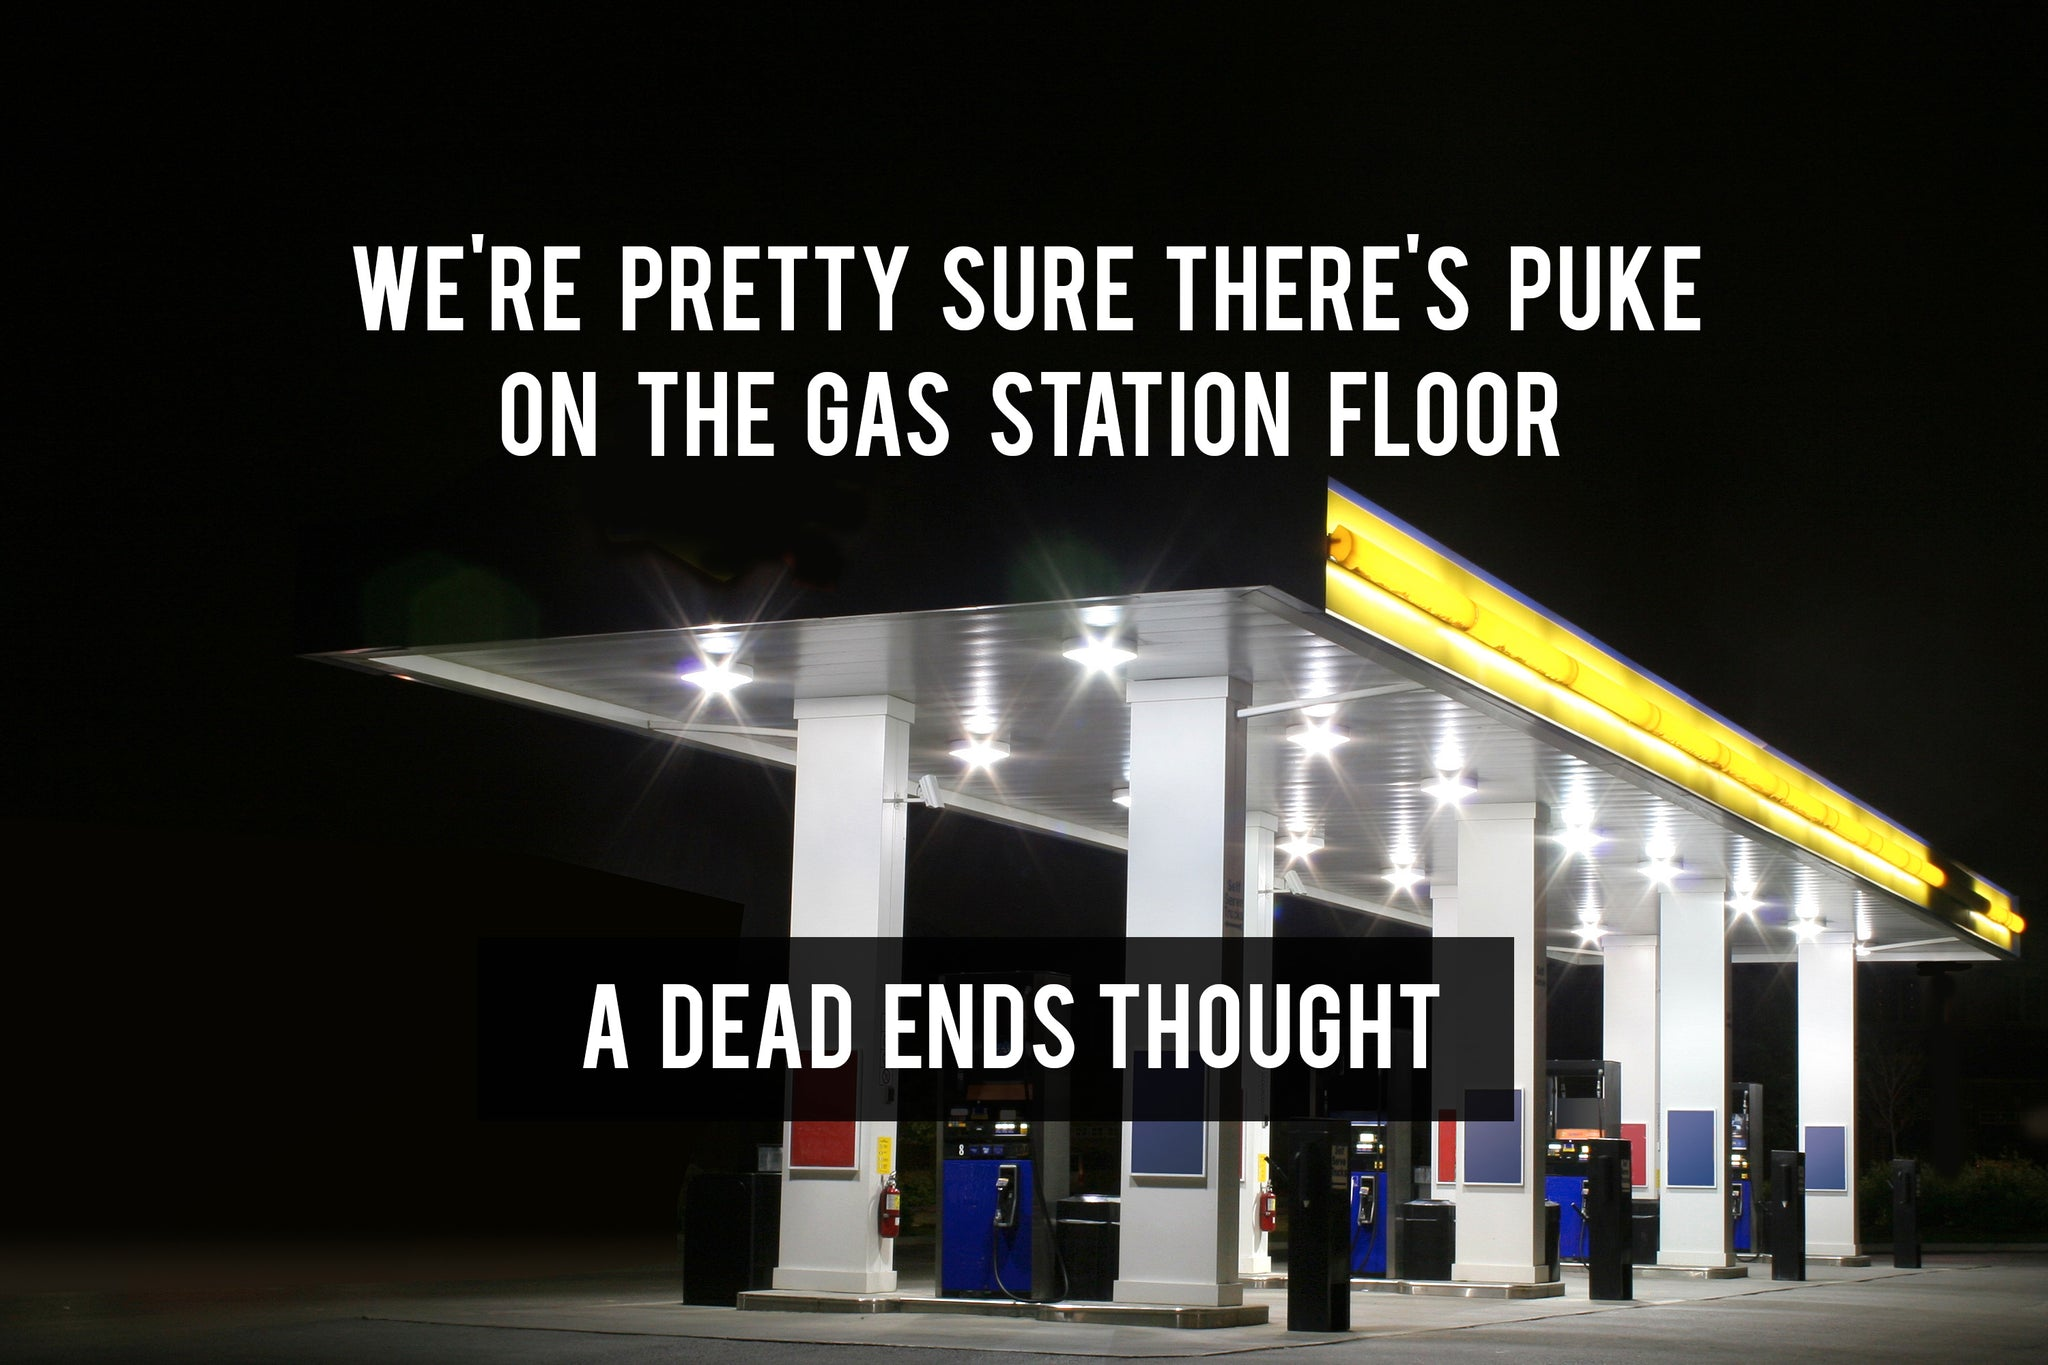 We're pretty sure there's puke on the gas station floor - a dead ends thought